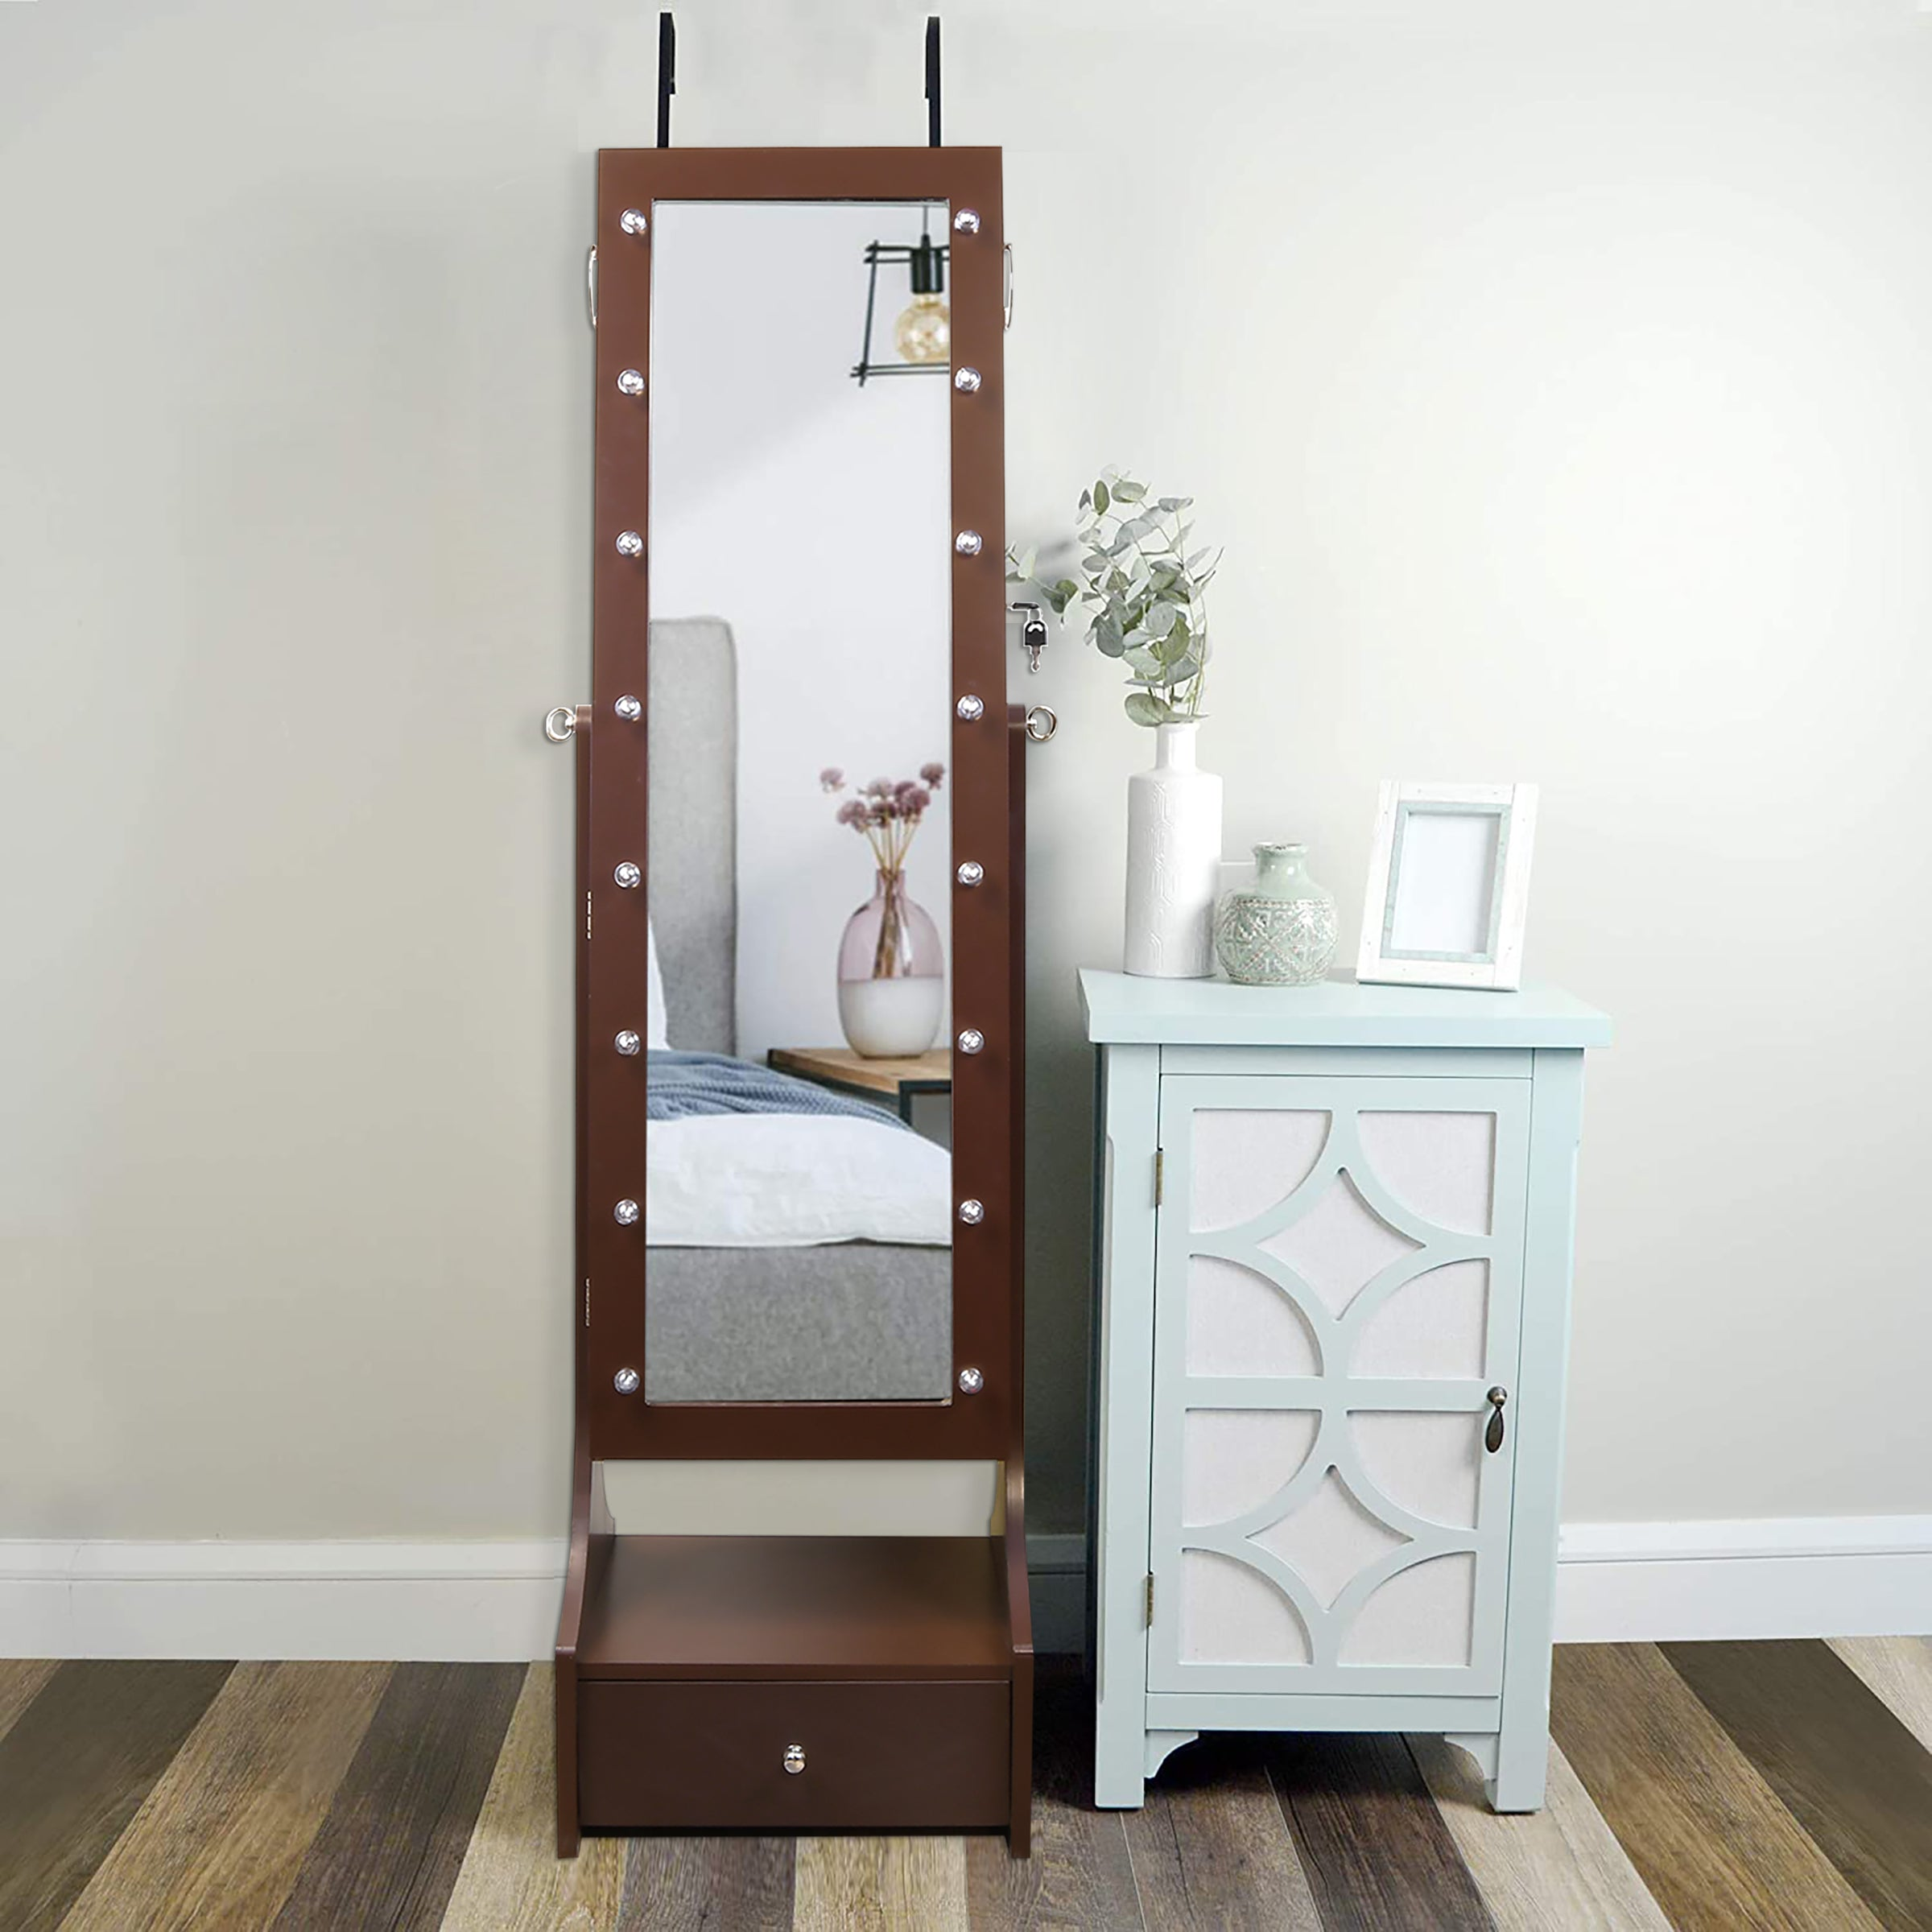 "60"" Jewelry Organizer Armoire with Full-Length Lighted Mirror, Makeup Storage and Hooks, Brown"